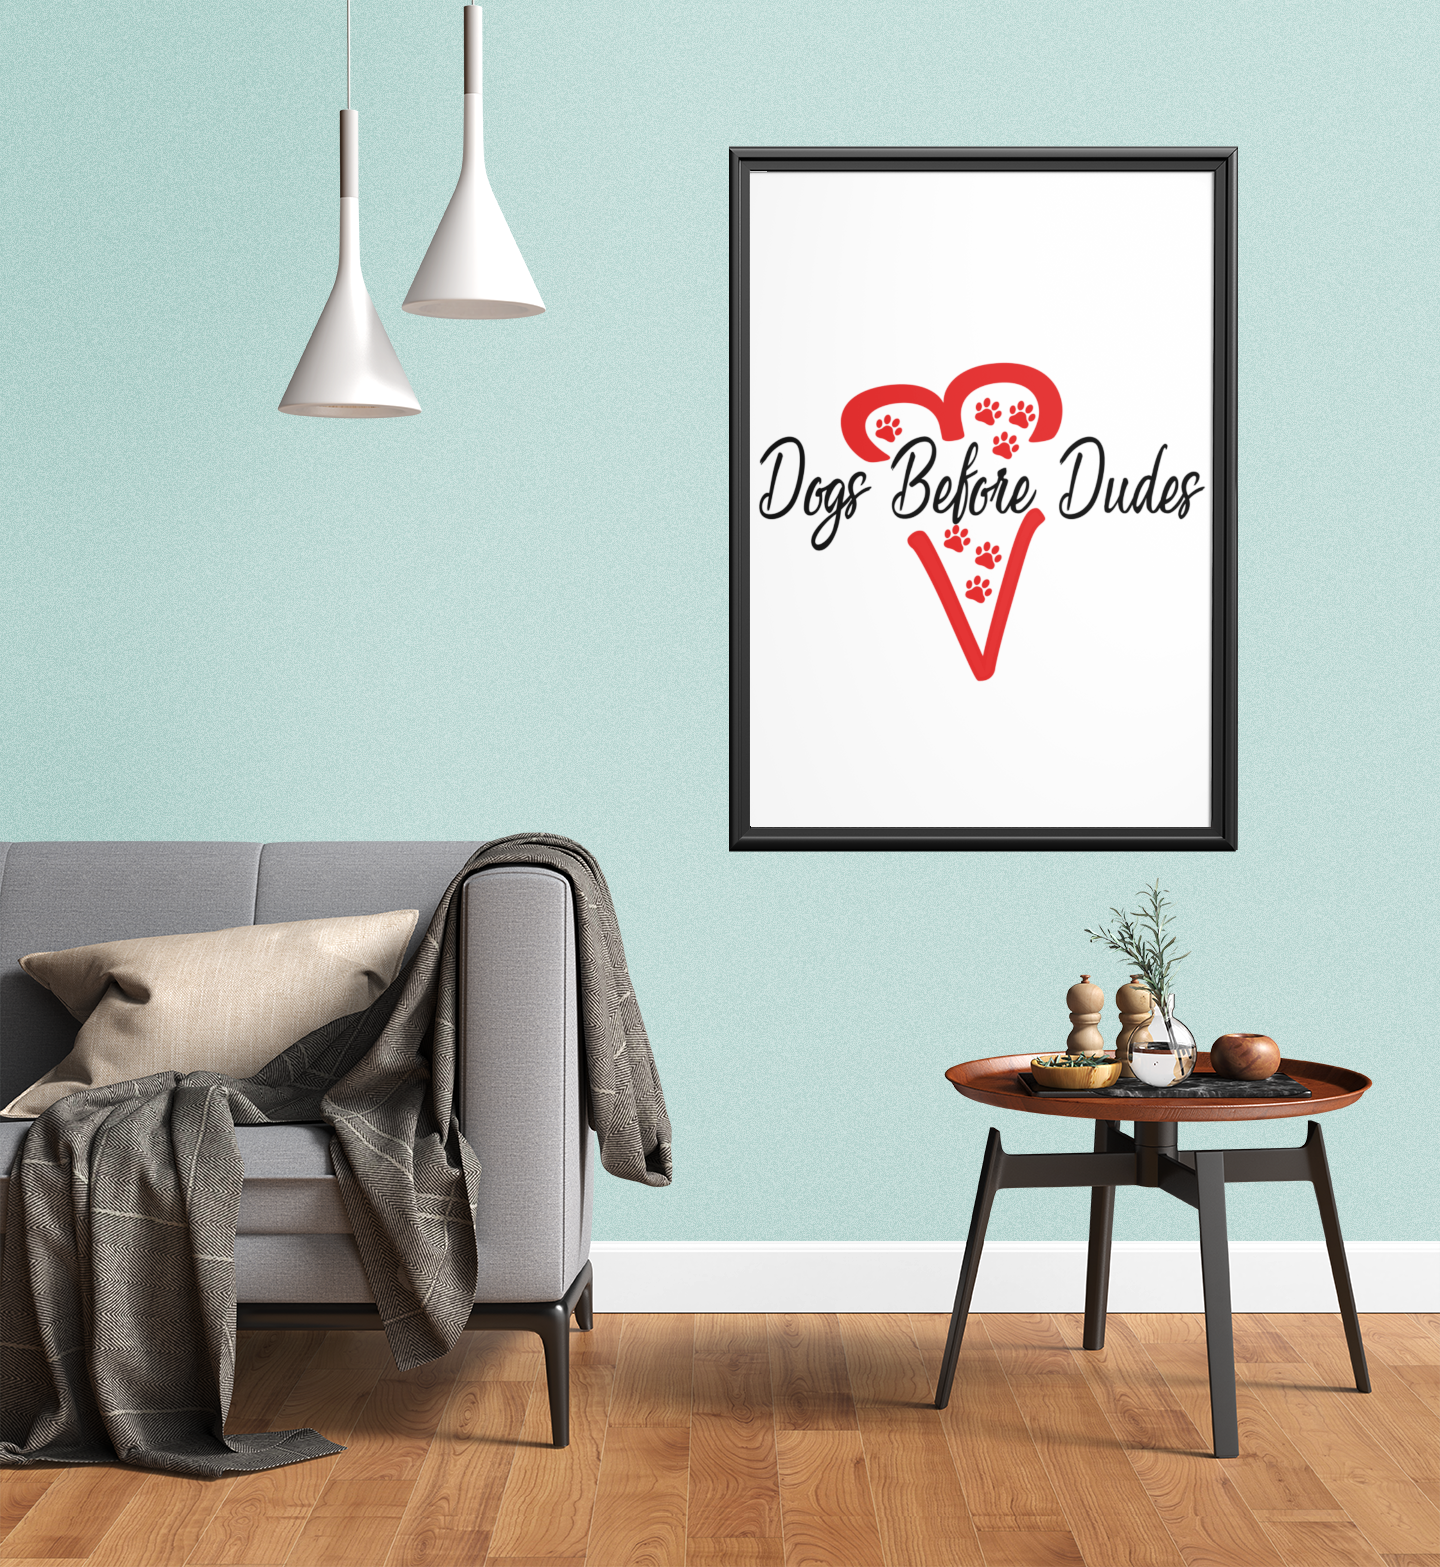 Dogs Before Dudes Make it Yourself Wall Art